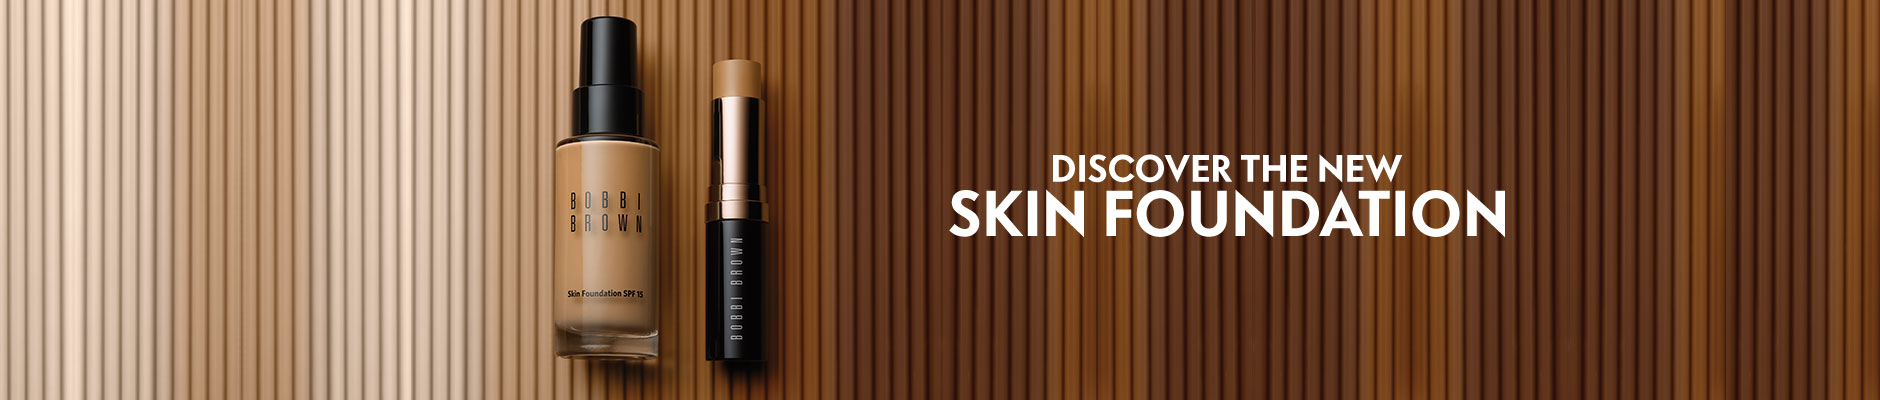 Discover The New Skin Foundation